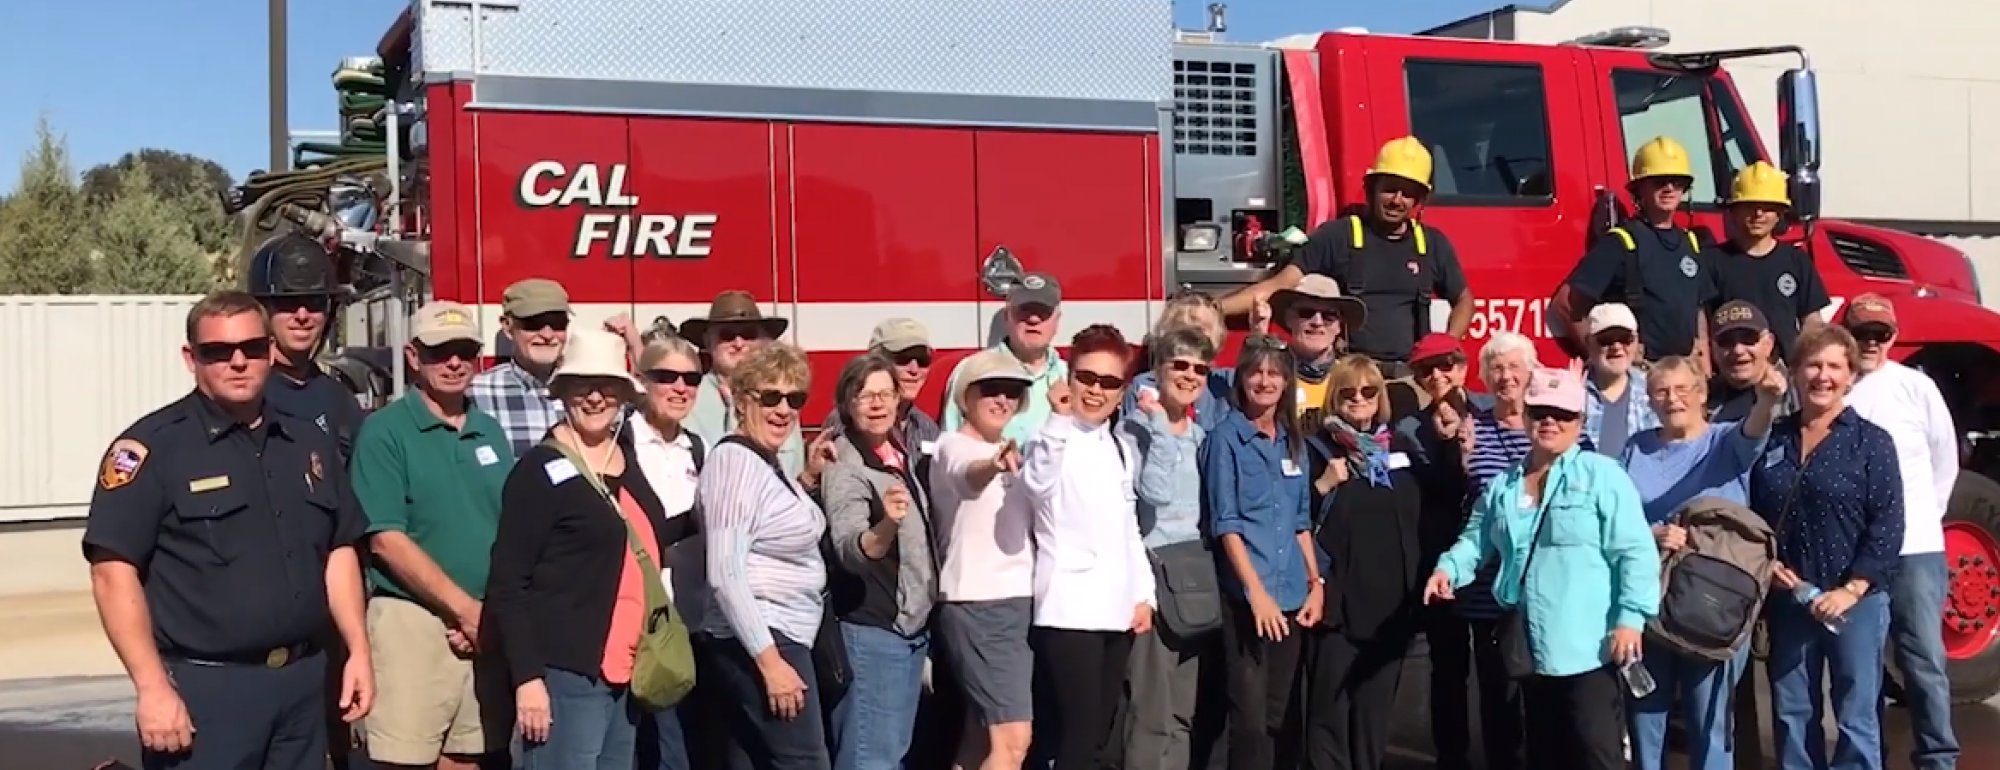 OLLI members on a field trip to Cal Fire